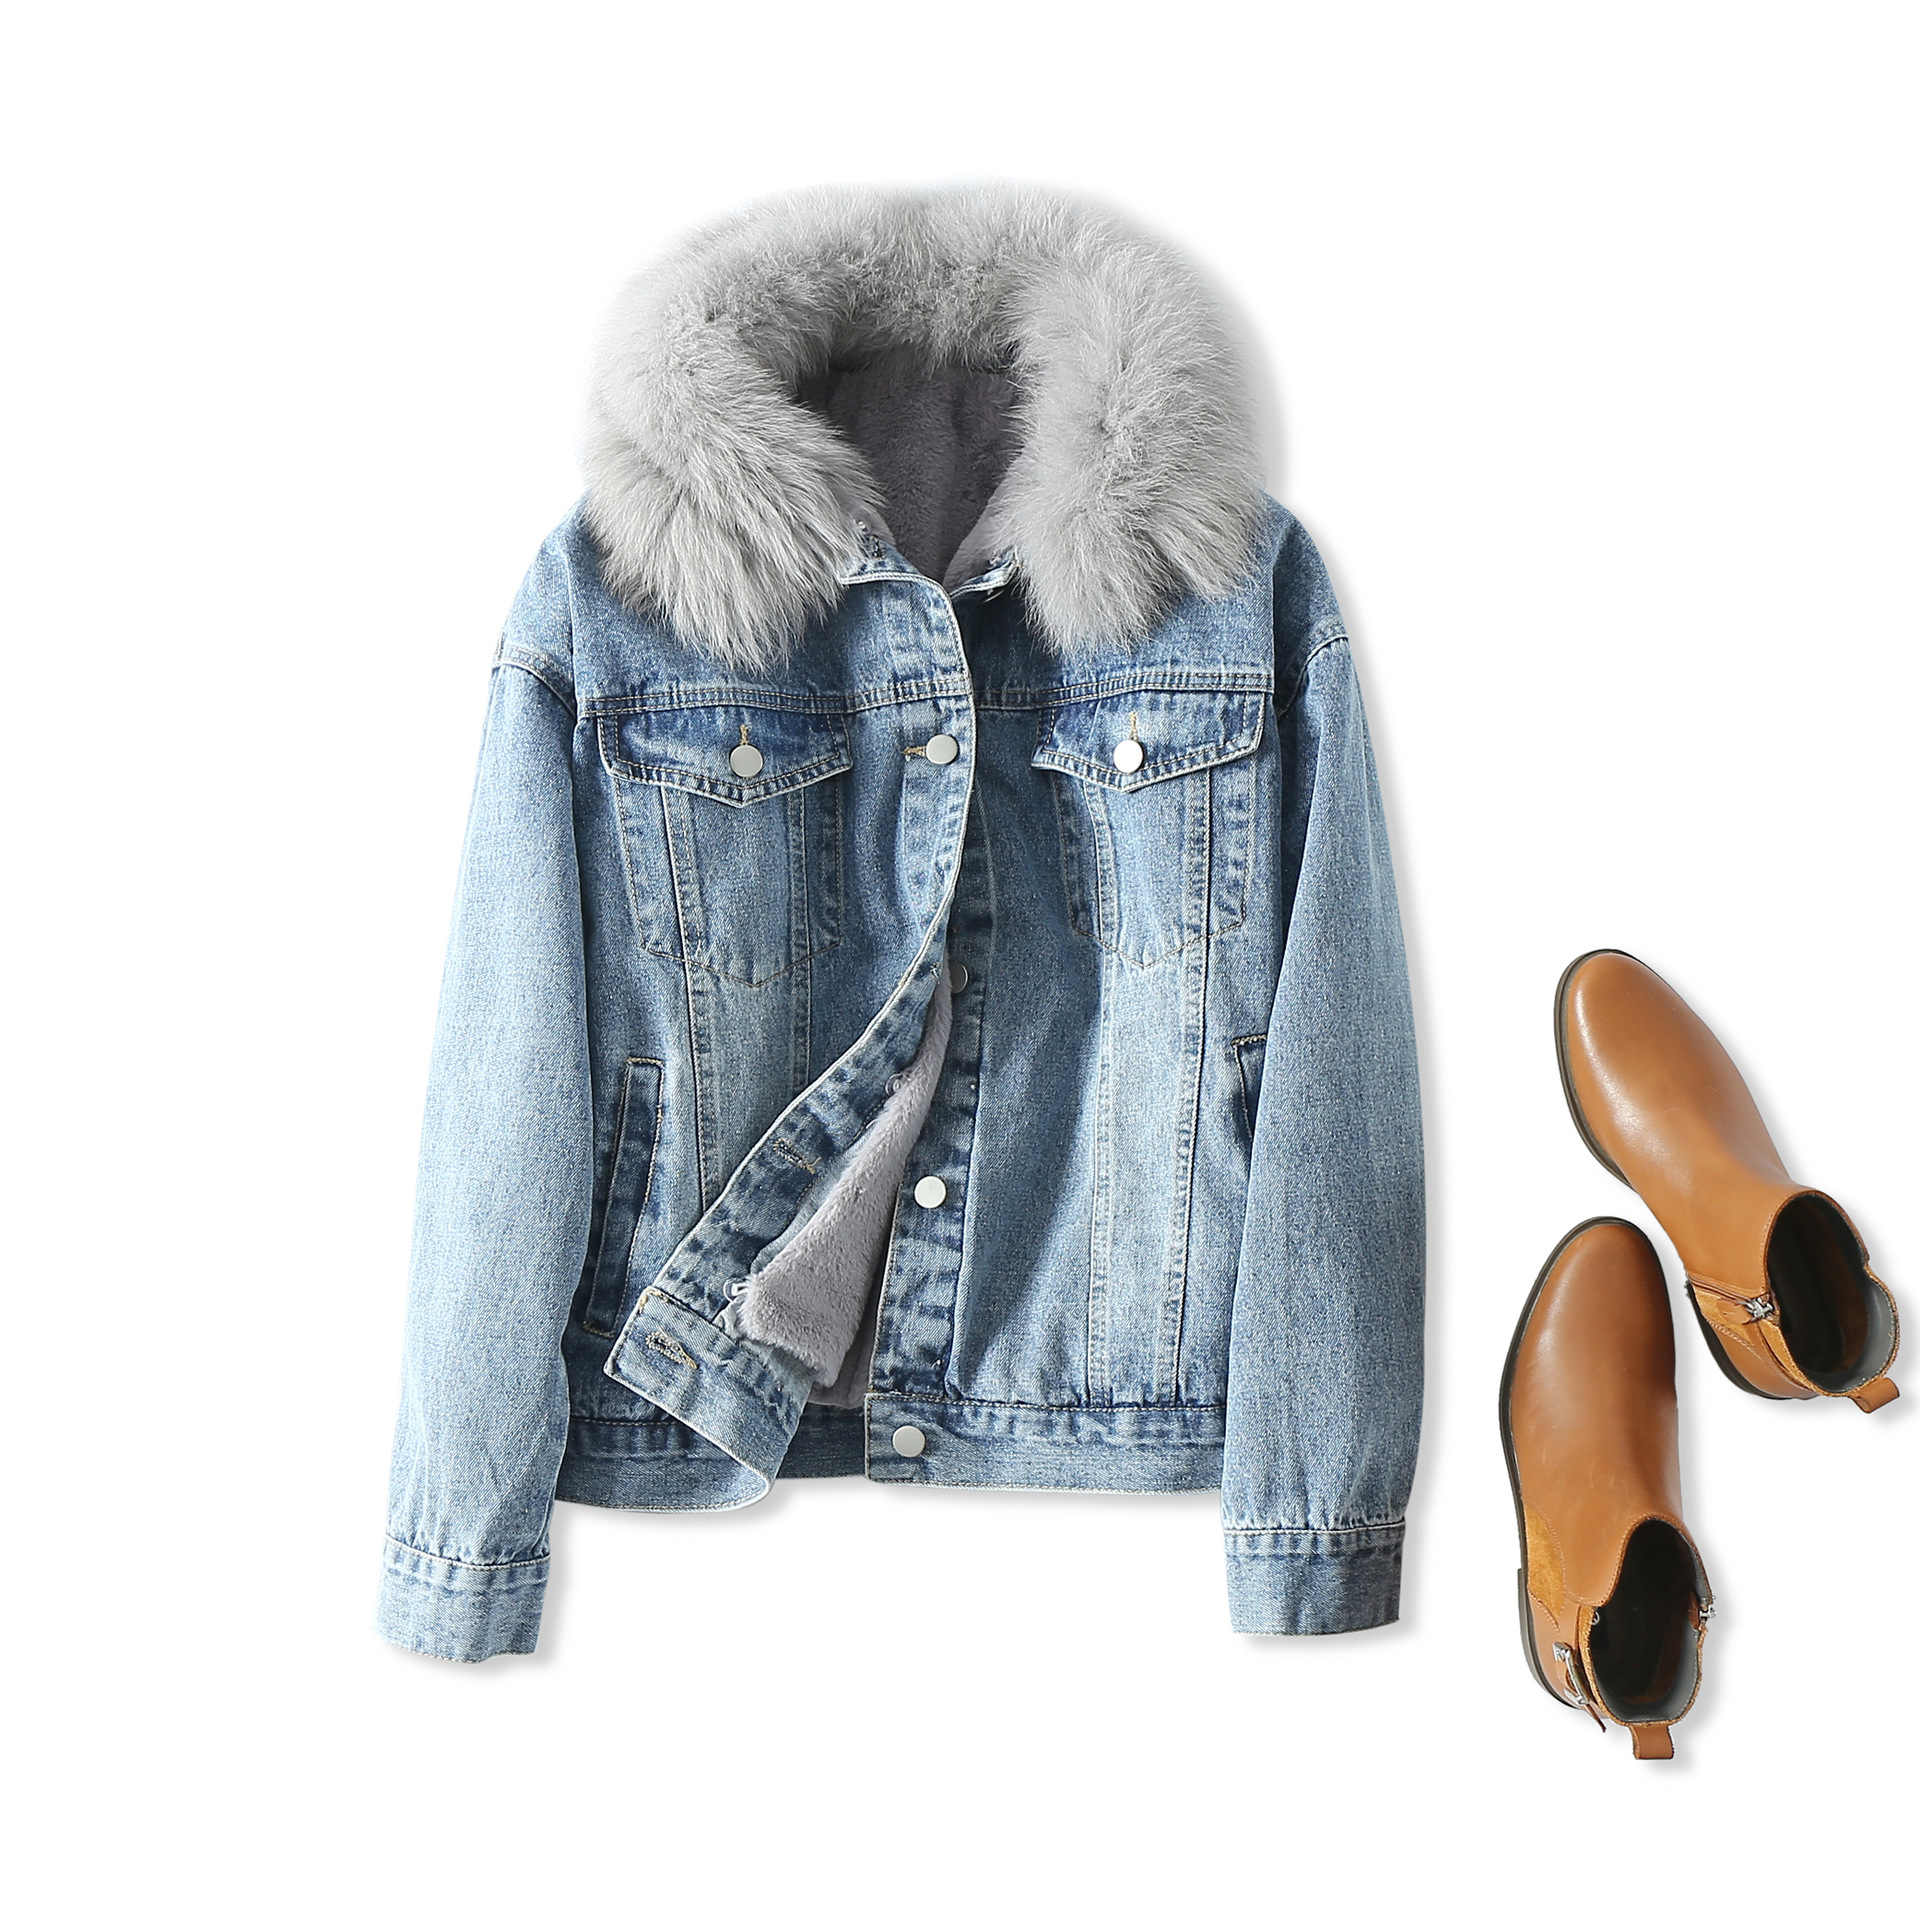 18 Winter New Products Warm Accent Fox Fur Collar Deconstructable Dehaired Angora Inner Wearing Cowboy Cotton Coat Women's